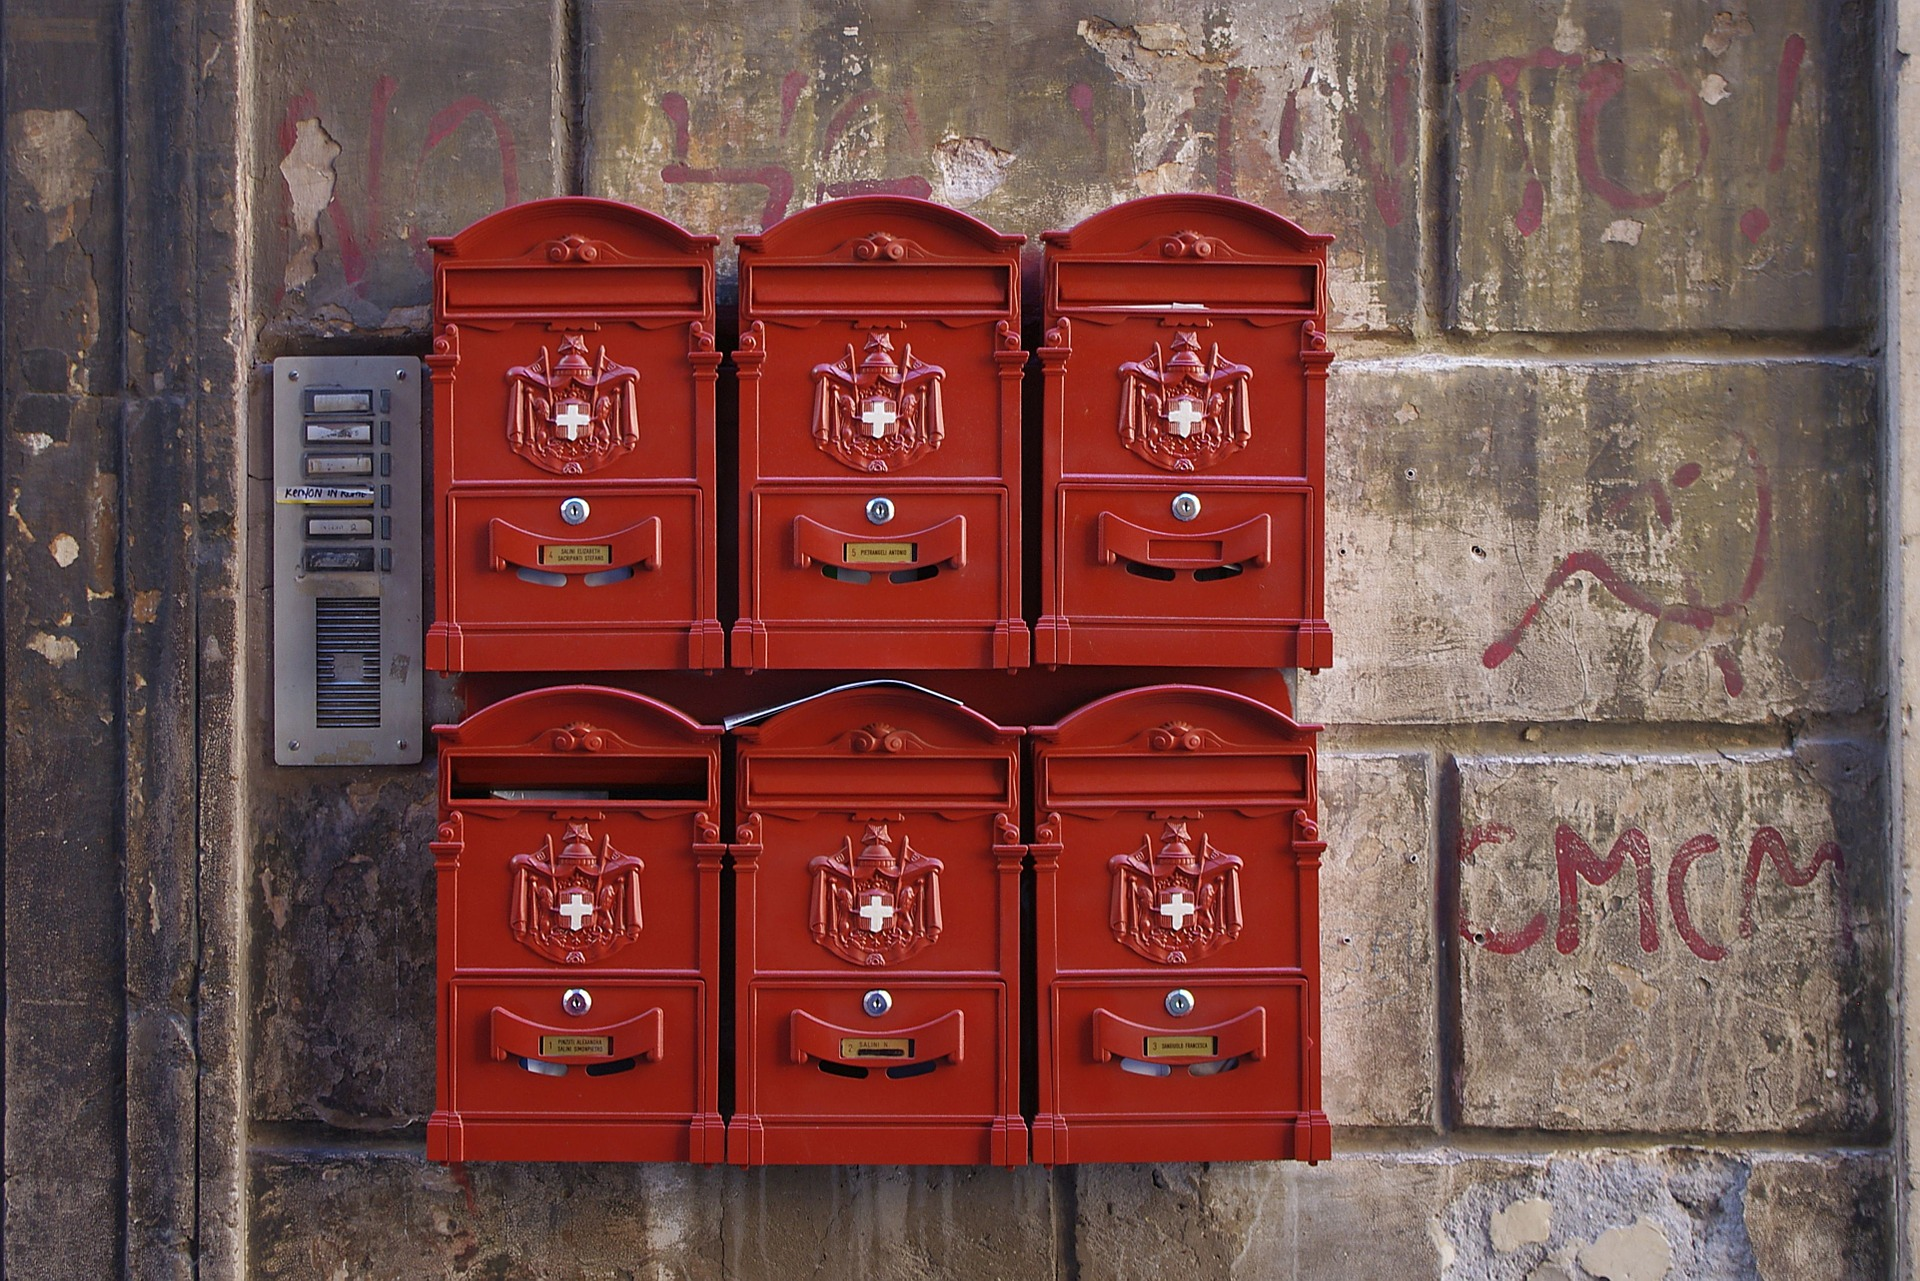 Mailbox by Blitzmaeker (source: Pixabay)